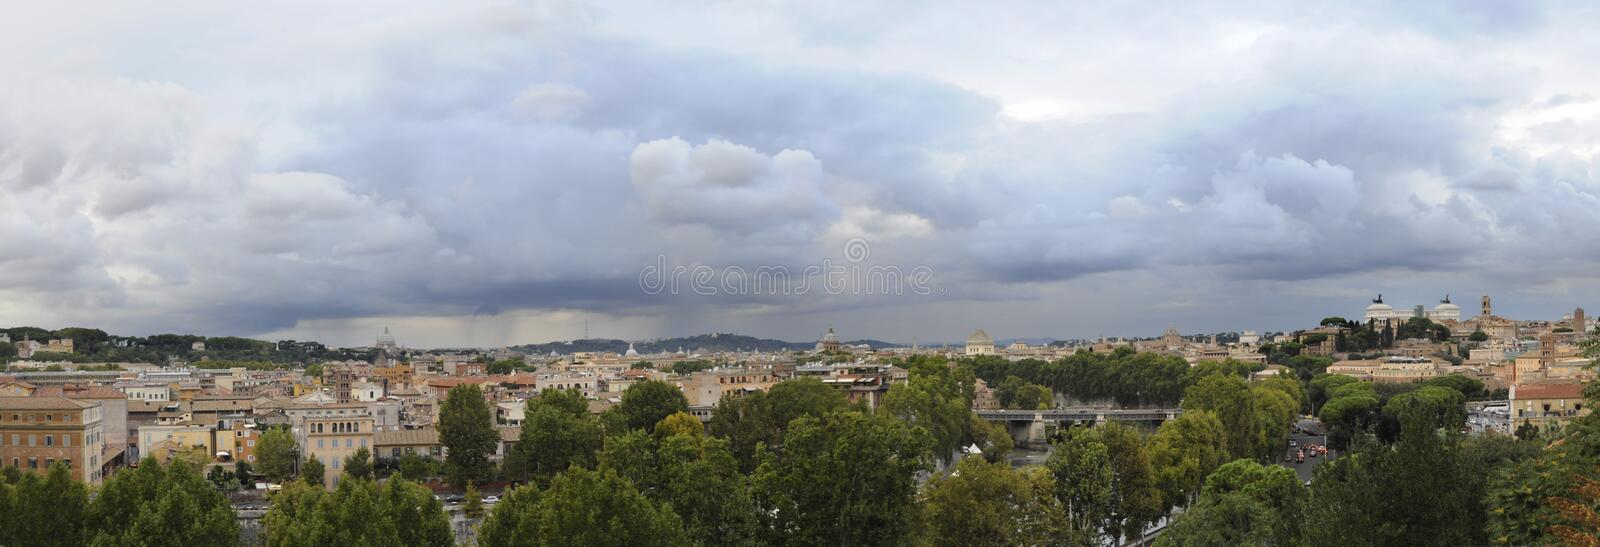 Panorama of Rome under cloudy sky